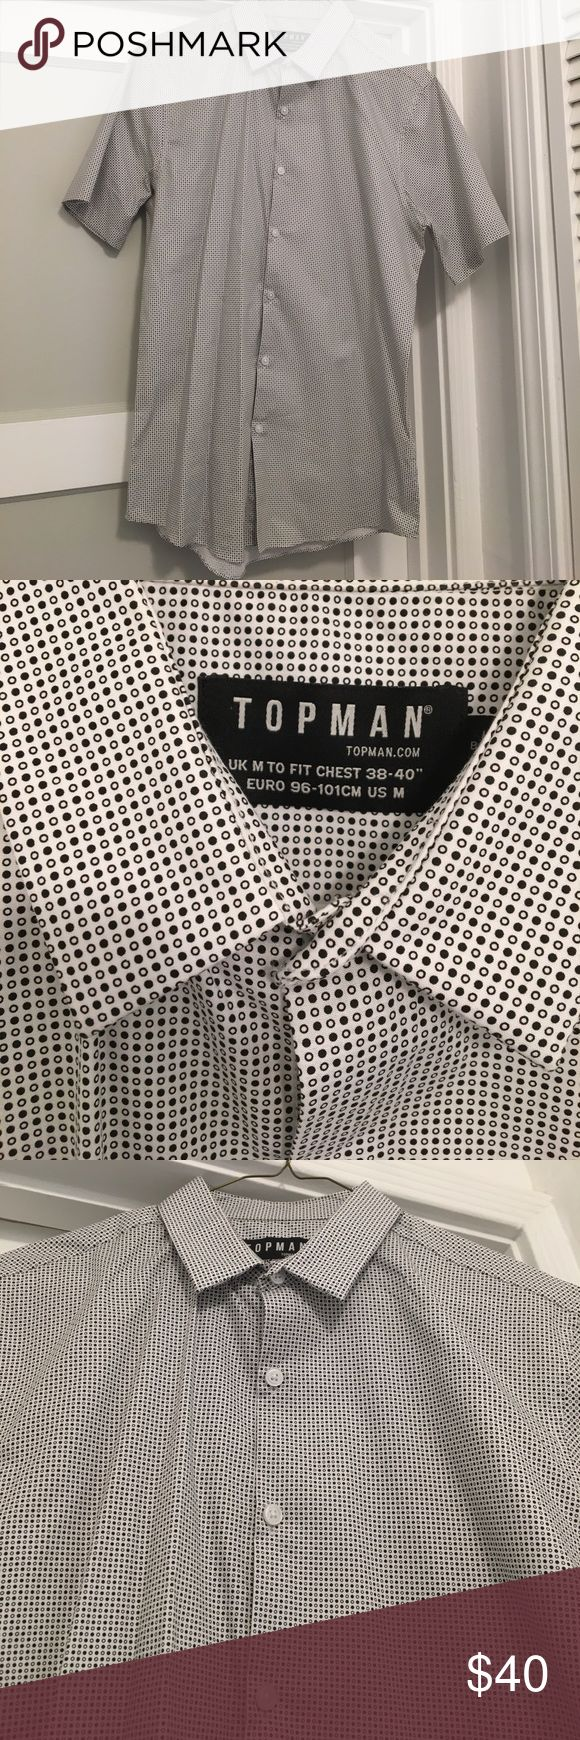 Topman Short Sleeve Dress Shirt Size Medium NWOT Topman Short Sleeve Dress Shirt Size Medium in colors white/black. This was never worn because it didn't fit me. NWOT. Topman Shirts Dress Shirts